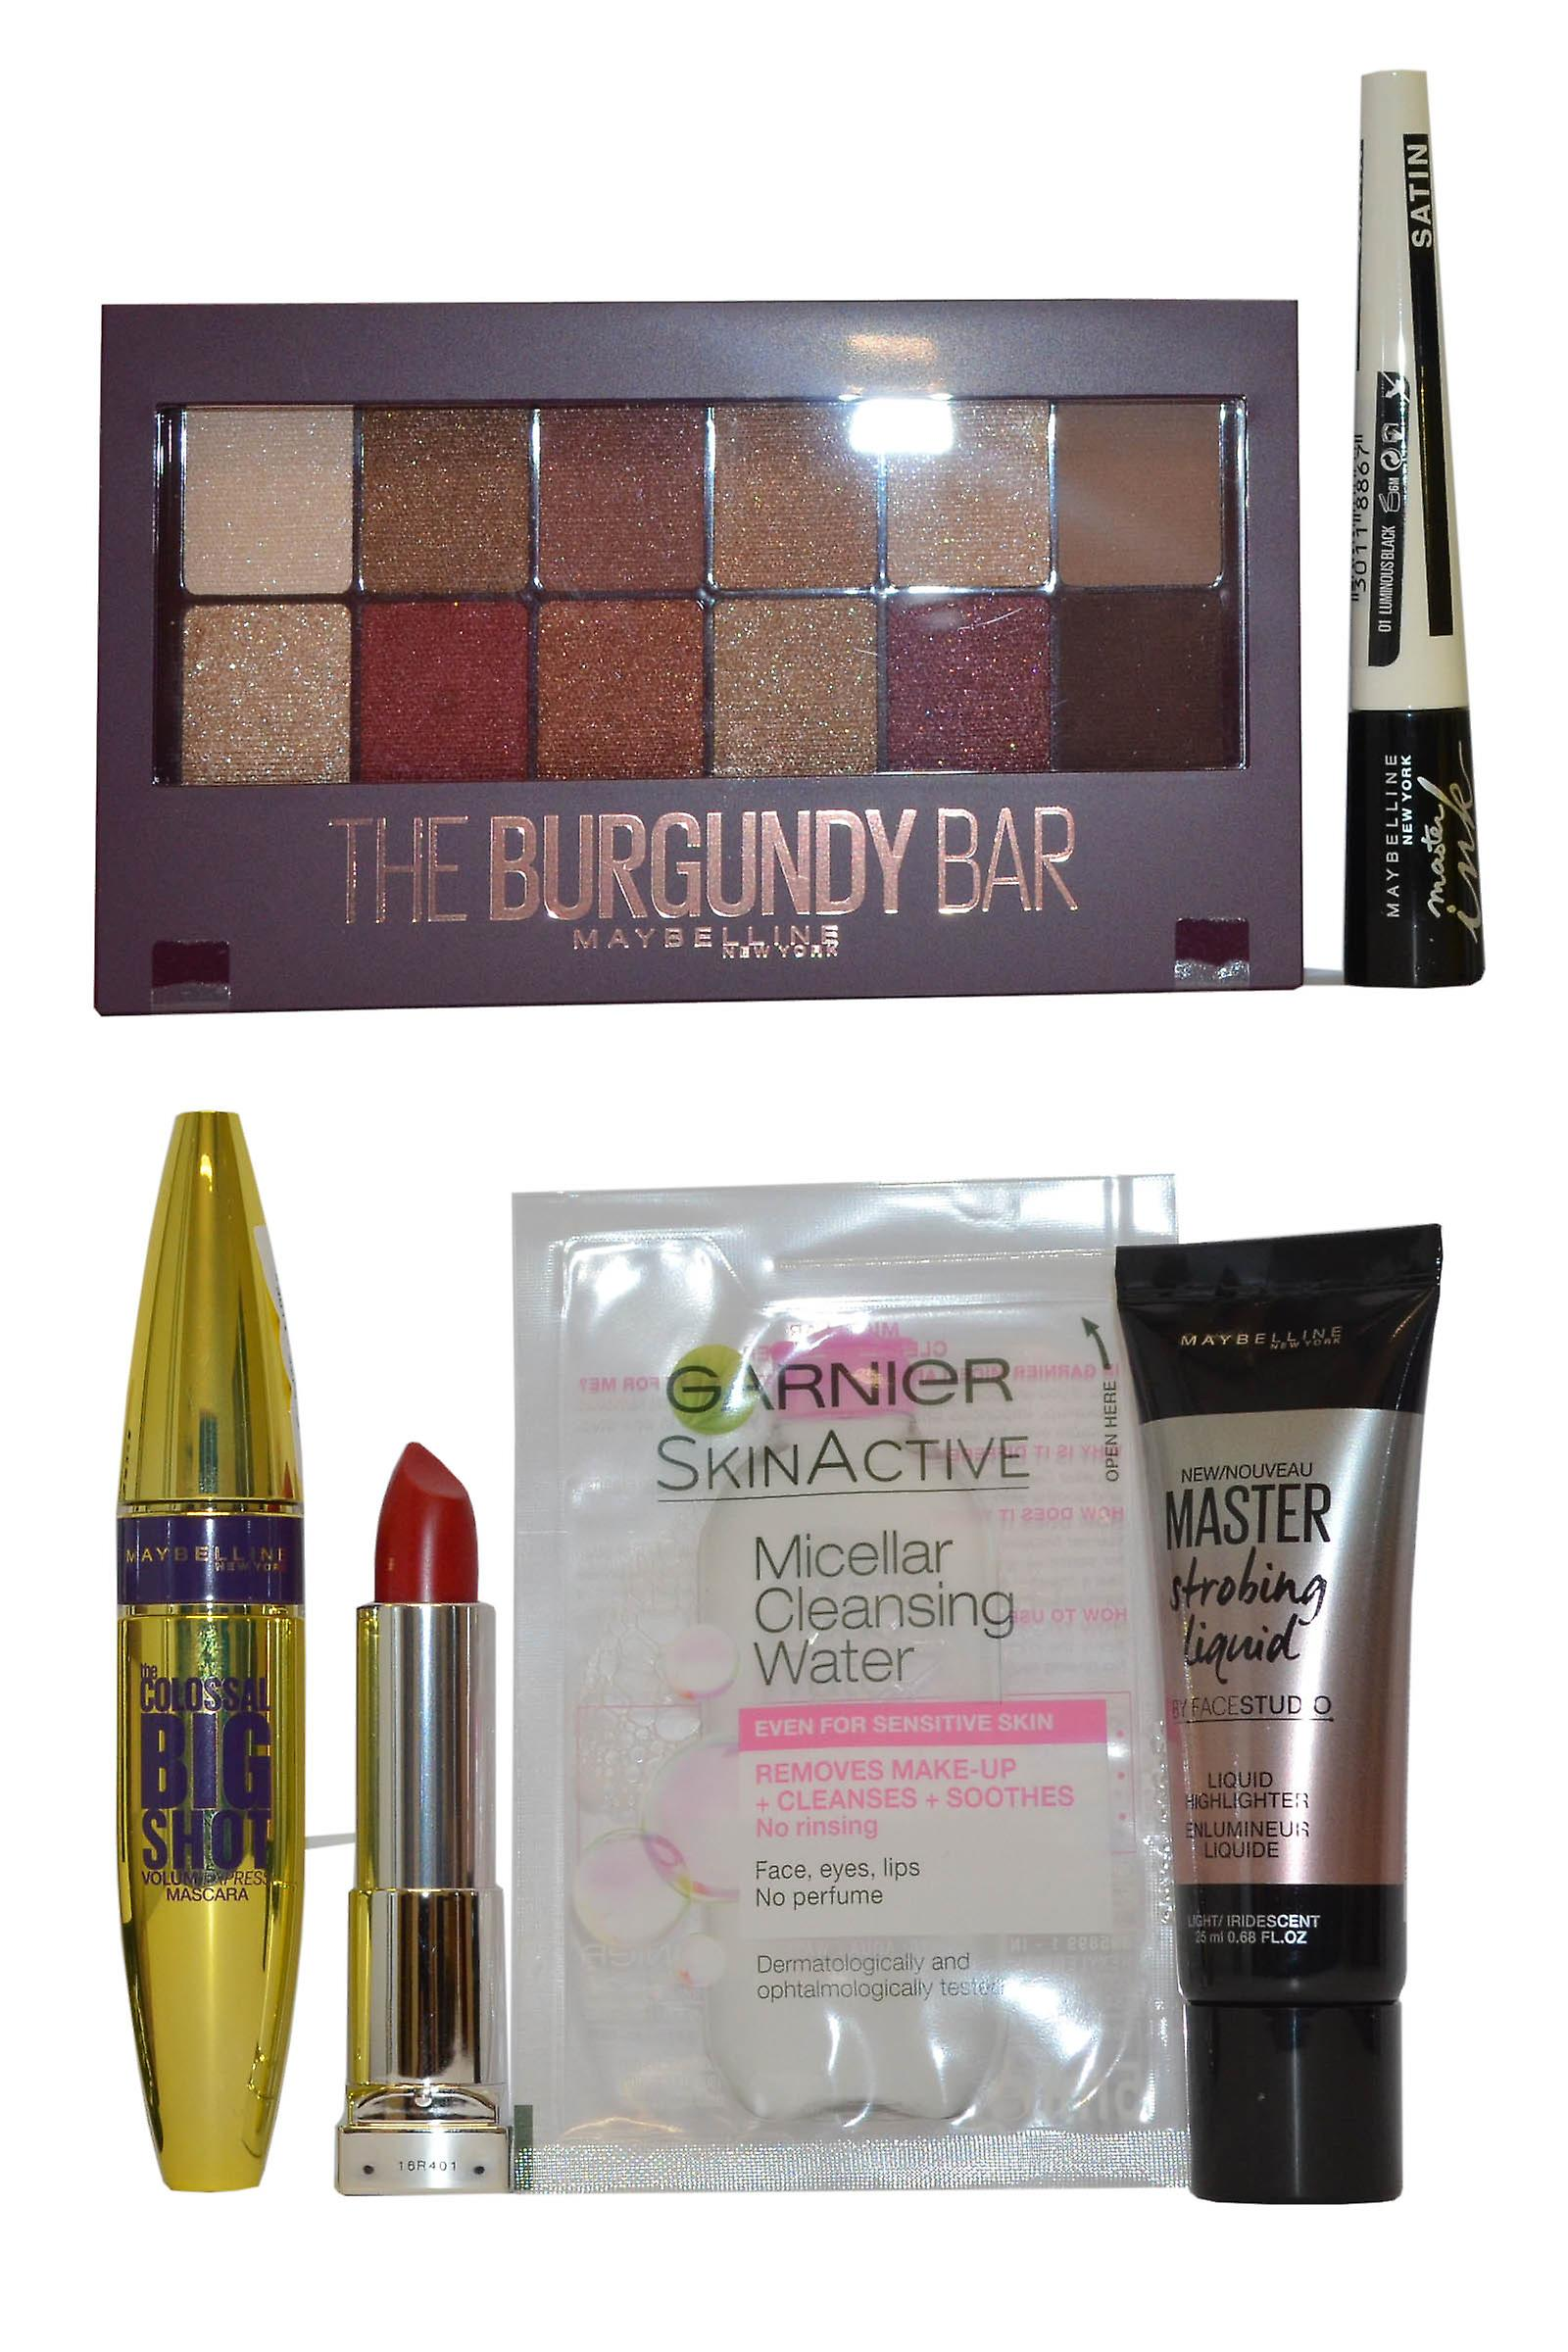 1393b112019 Maybelline The Burgundy Bar Compact, Highlighter Colossal Mascara,  Lipstick, Master Ink+